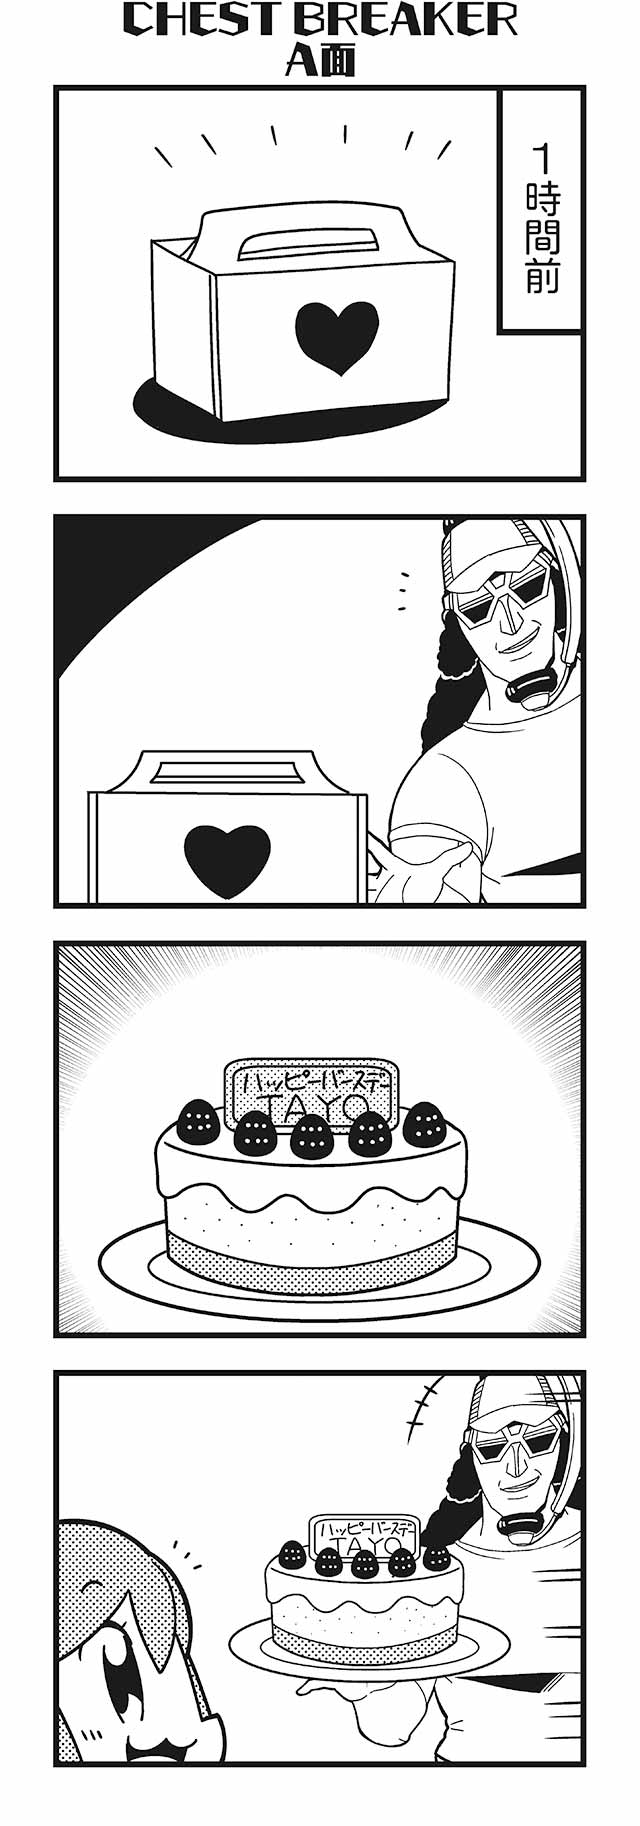 +++ /\/\/\ 1boy 1girl 4koma :3 bangs bkub blush cake character_name comic dj_copy_and_paste emphasis_lines eyebrows_visible_through_hair food fruit glasses greyscale grin halftone hat headphones heart highres holding holding_plate honey_come_chatka!! monochrome open_mouth package plate shirt short_hair simple_background smile speed_lines strawberry tayo translation_request two-tone_background